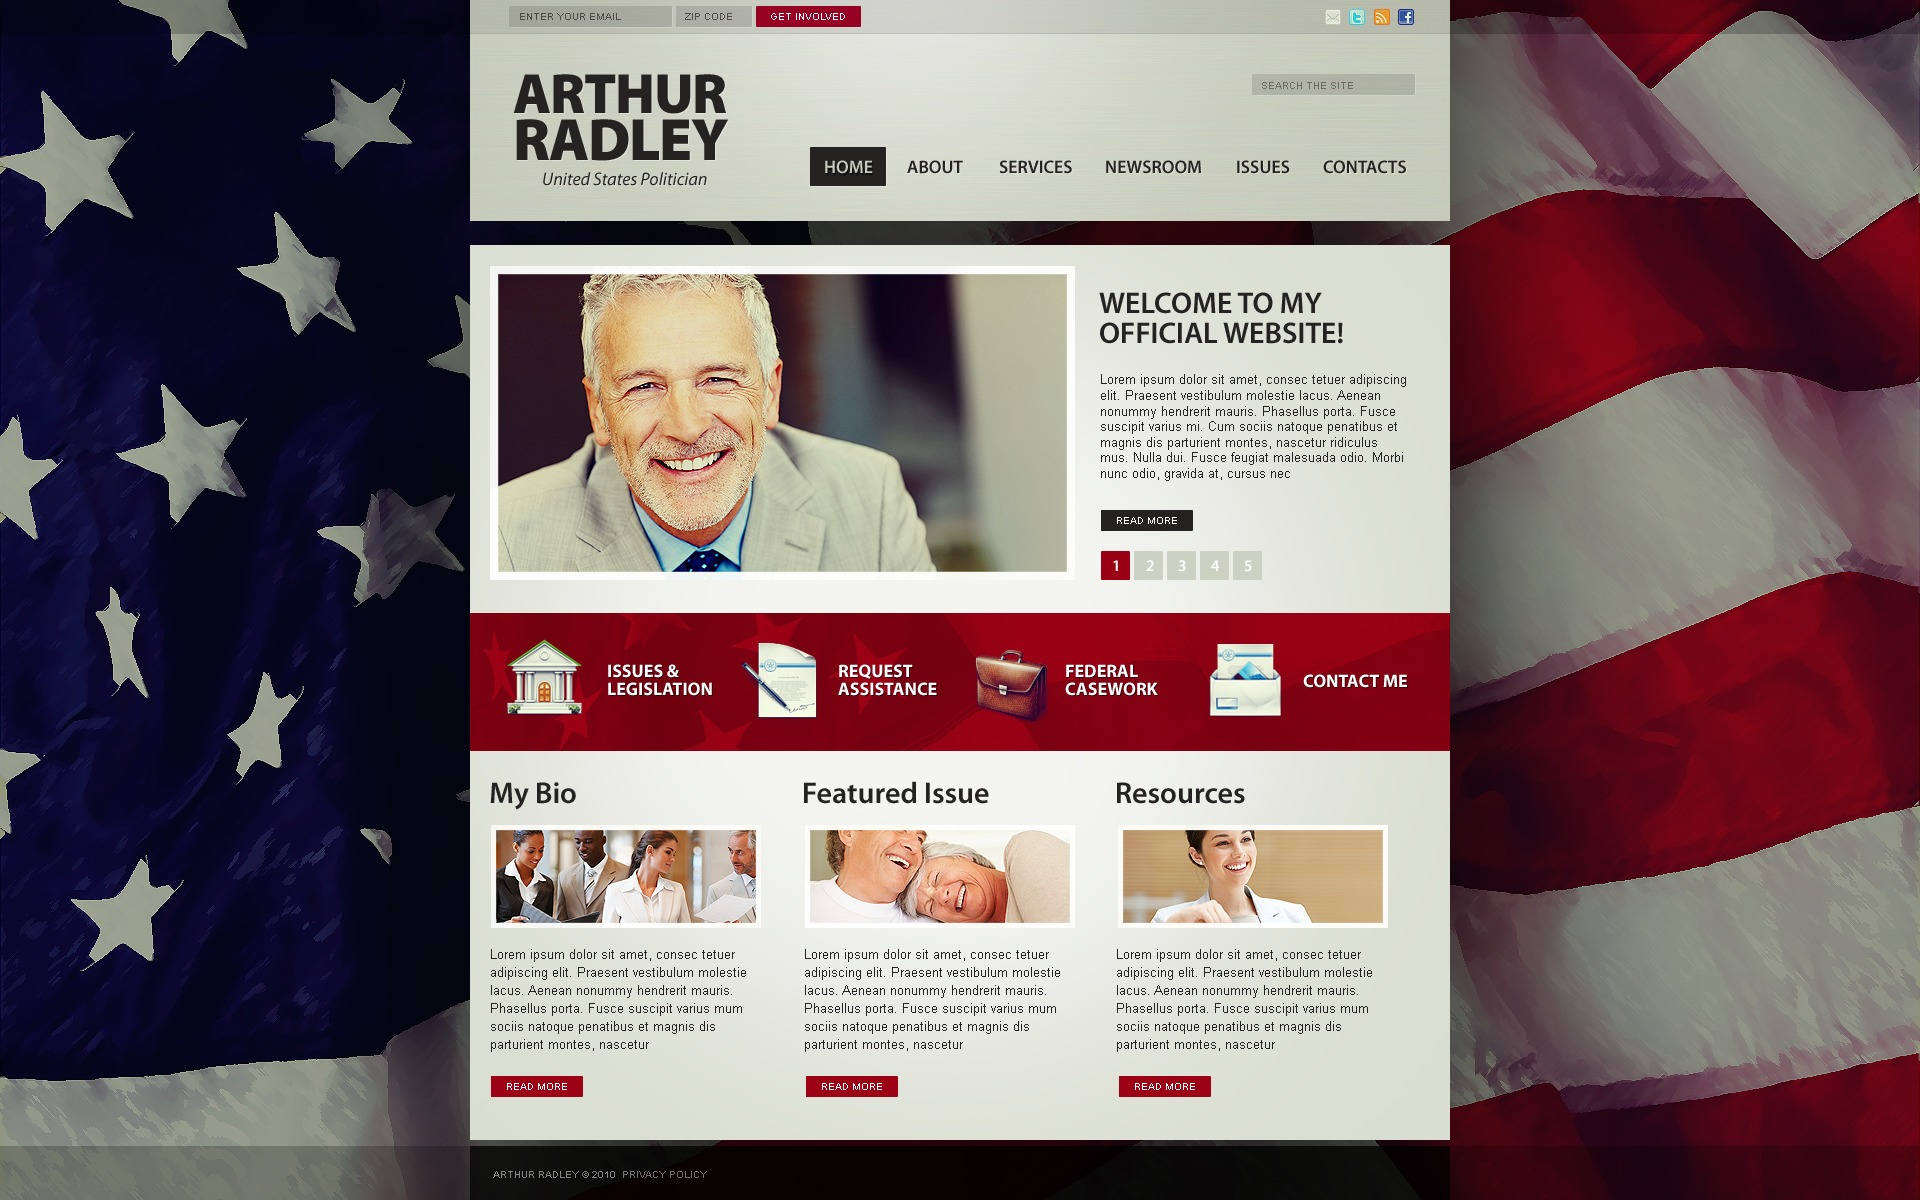 The Arthur Radley Politician PSD Design 54232, one of the best PSD templates of its kind (politics, most popular, wide, jquery), also known as Arthur Radley politician PSD template, political organization PSD template, leader PSD template, chairman PSD template, campaign PSD template, constitution PSD template, member PSD template, principles PSD template, information PSD template, donation PSD template, platform PSD template, flag PSD template, candidates PSD template, debates PSD template, structure PSD template, election PSD template, program PSD template, priority and related with Arthur Radley politician, political organization, leader, chairman, campaign, constitution, member, principles, information, donation, platform, flag, candidates, debates, structure, election, program, priority, etc.